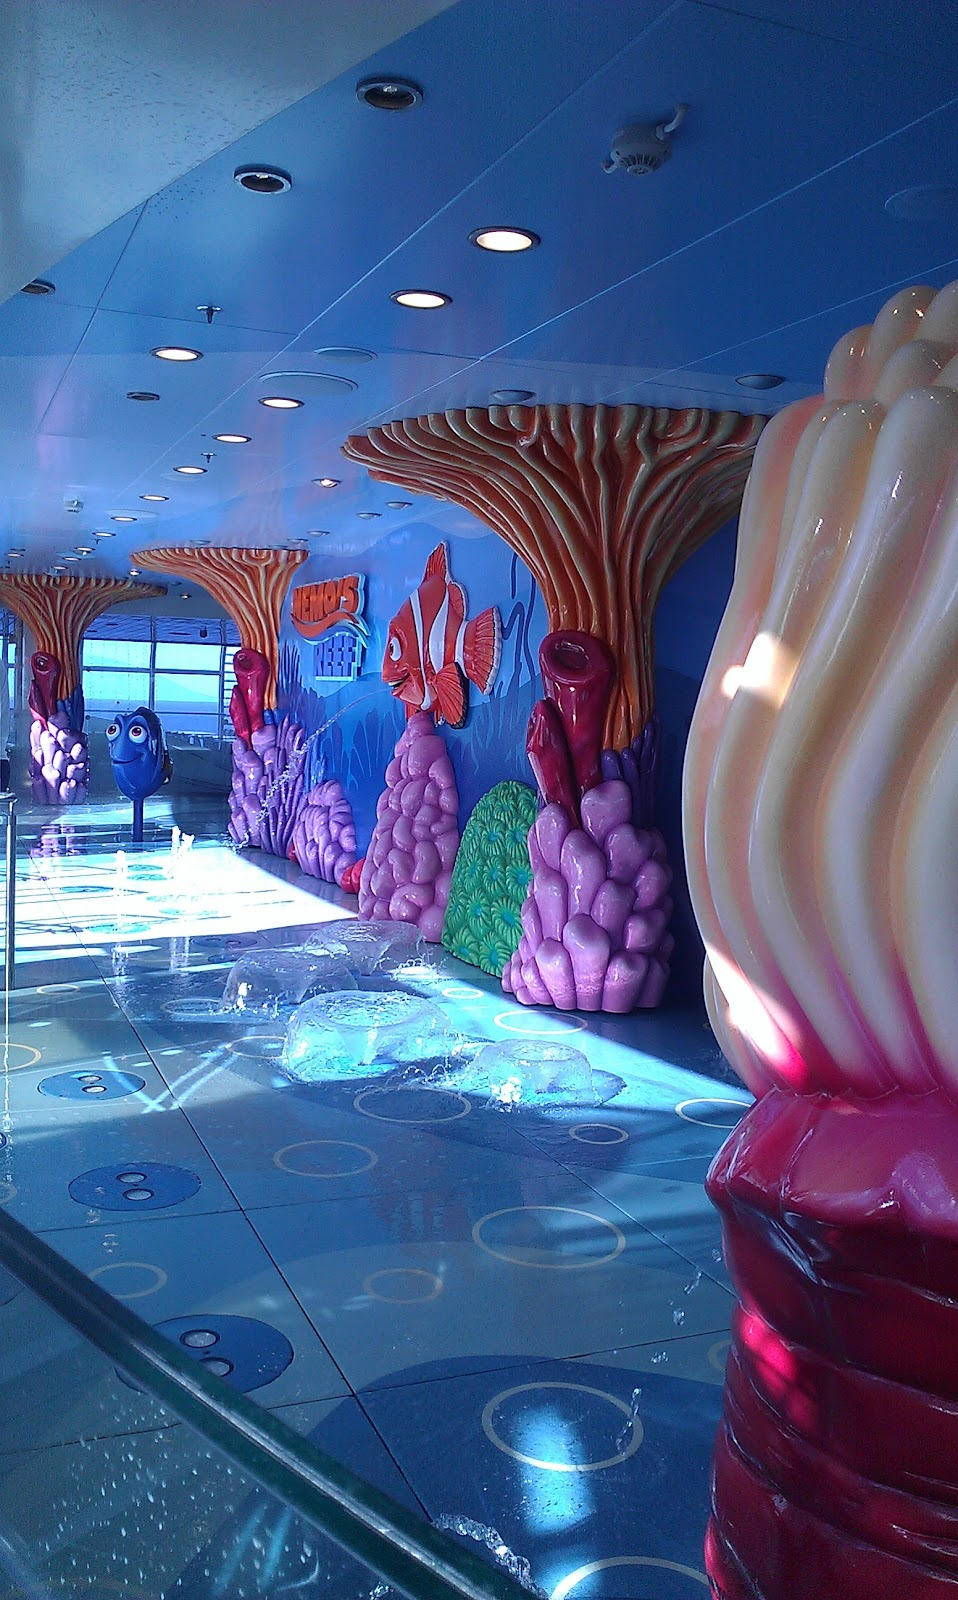 Nemo's splash pad Disney Fantasy Cruise ship